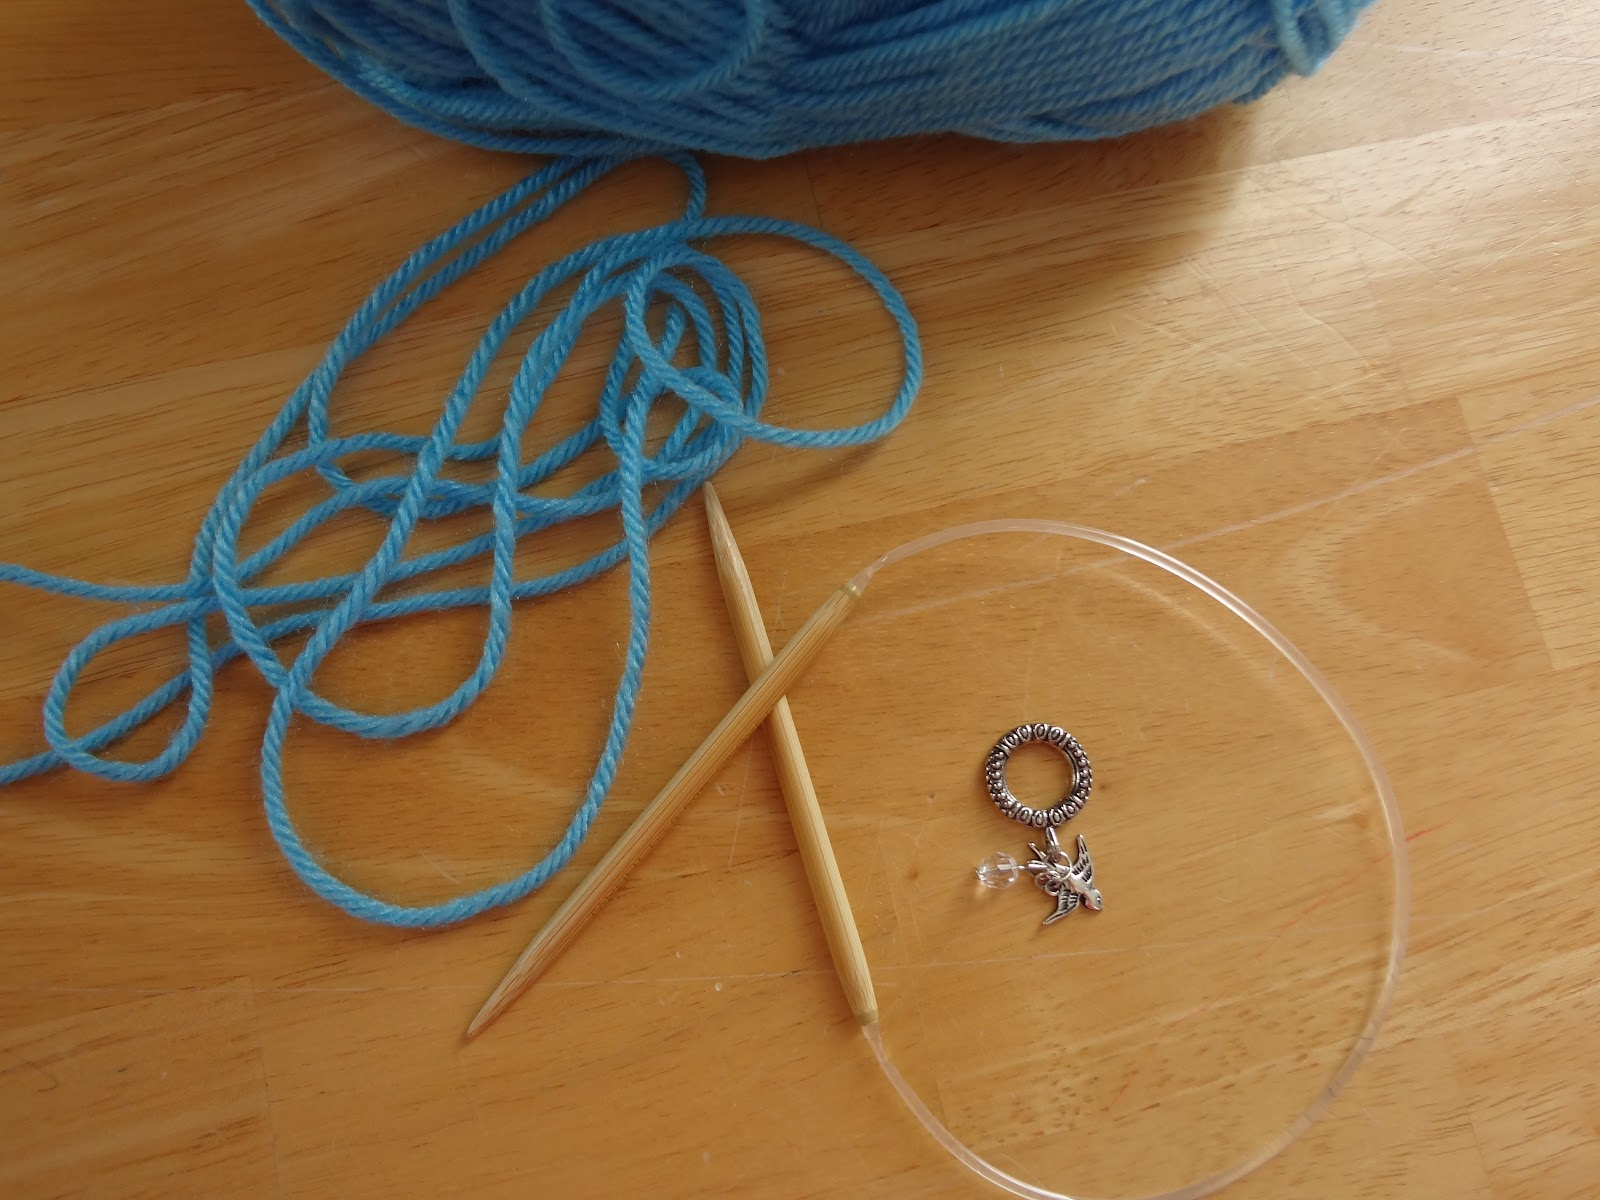 Knitting In The Round Circular Needles : Fiber flux how to knit in the round with circular needles